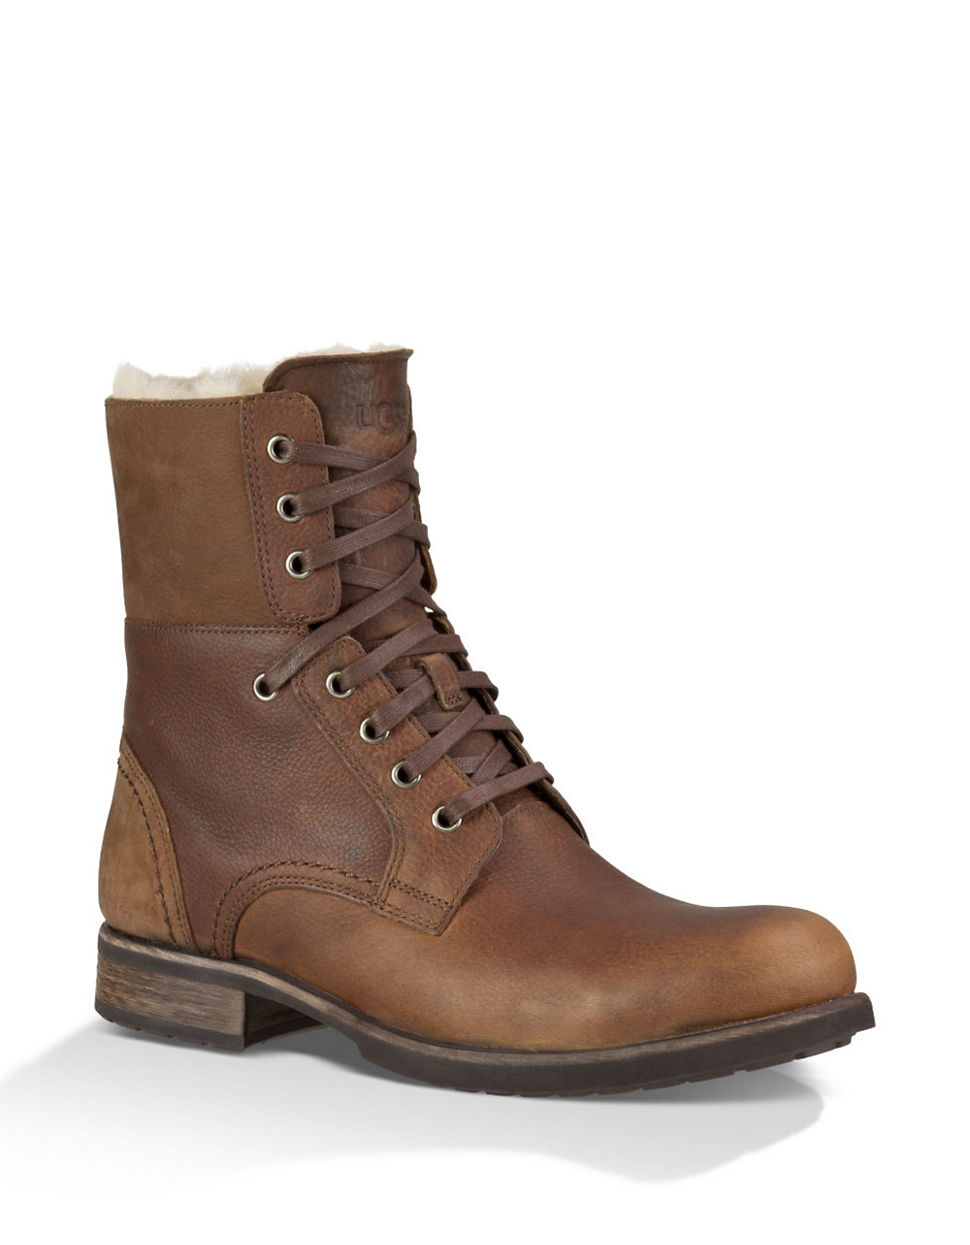 Find great deals on eBay for brown lace up boots. Shop with confidence.